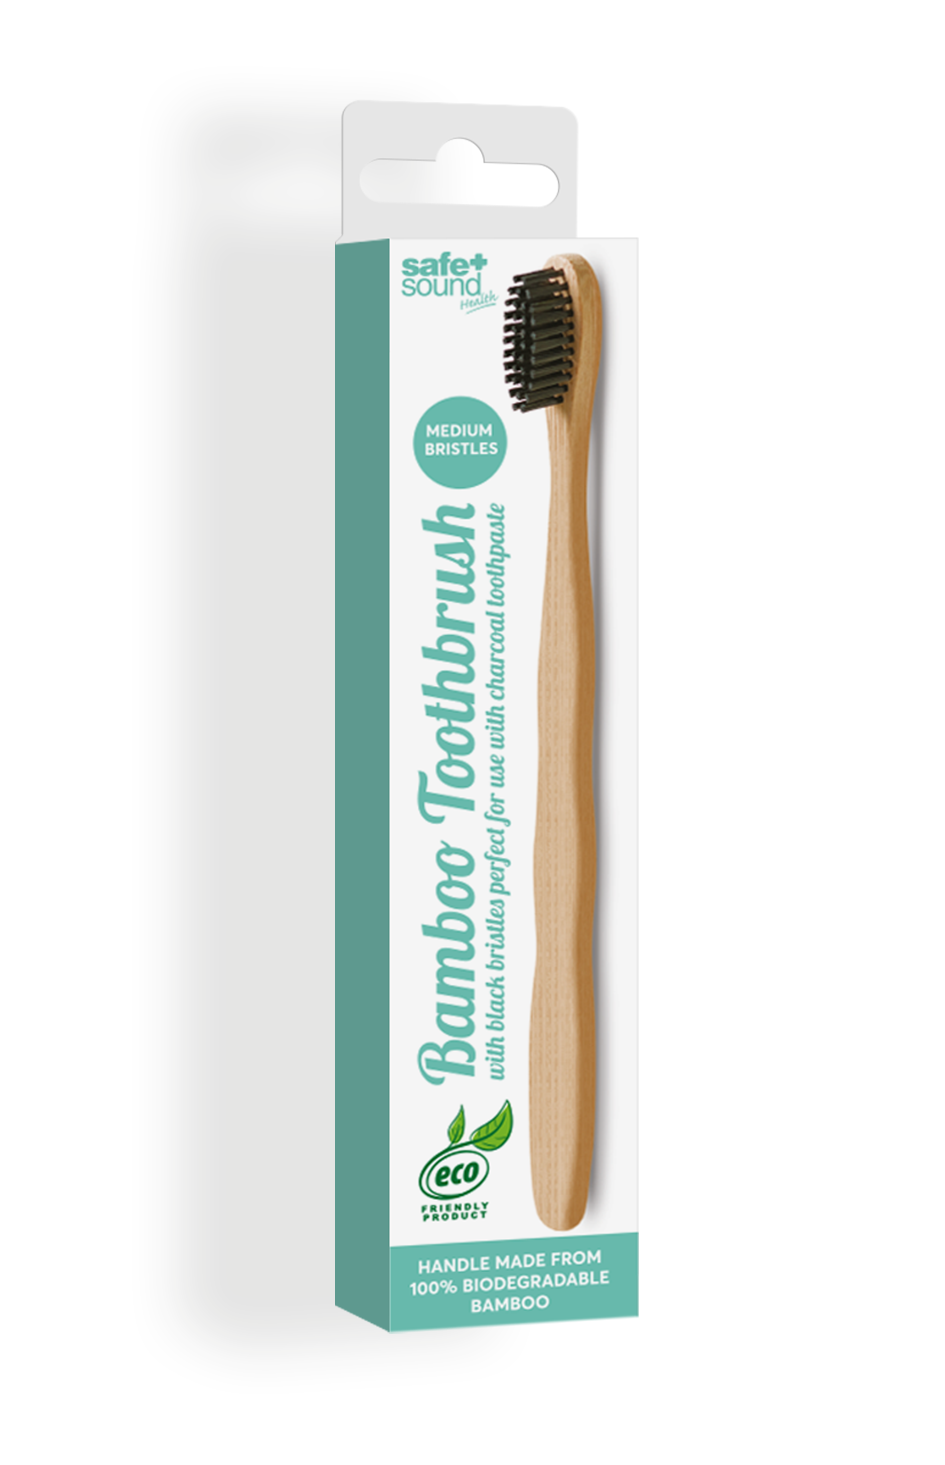 Safe and Sound Health Bamboo Toothbrush